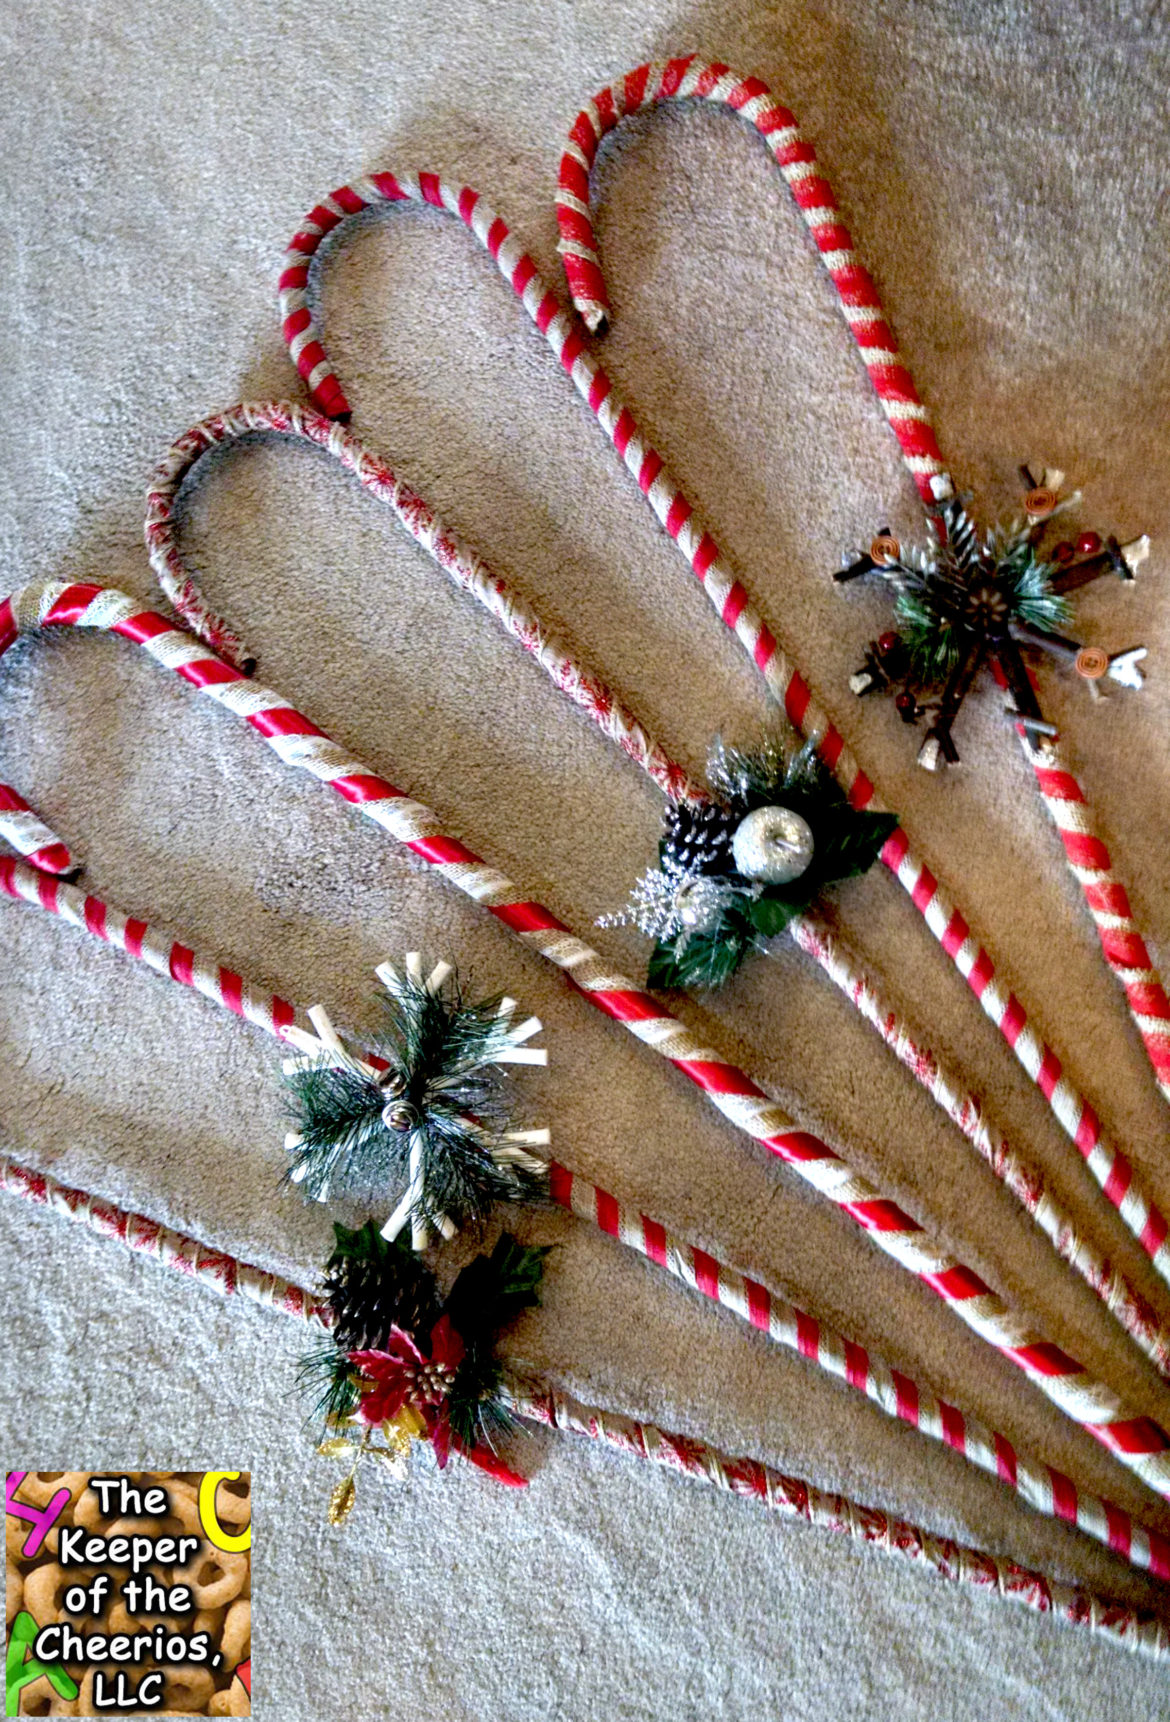 burlap-wrapped-candy-canes-7